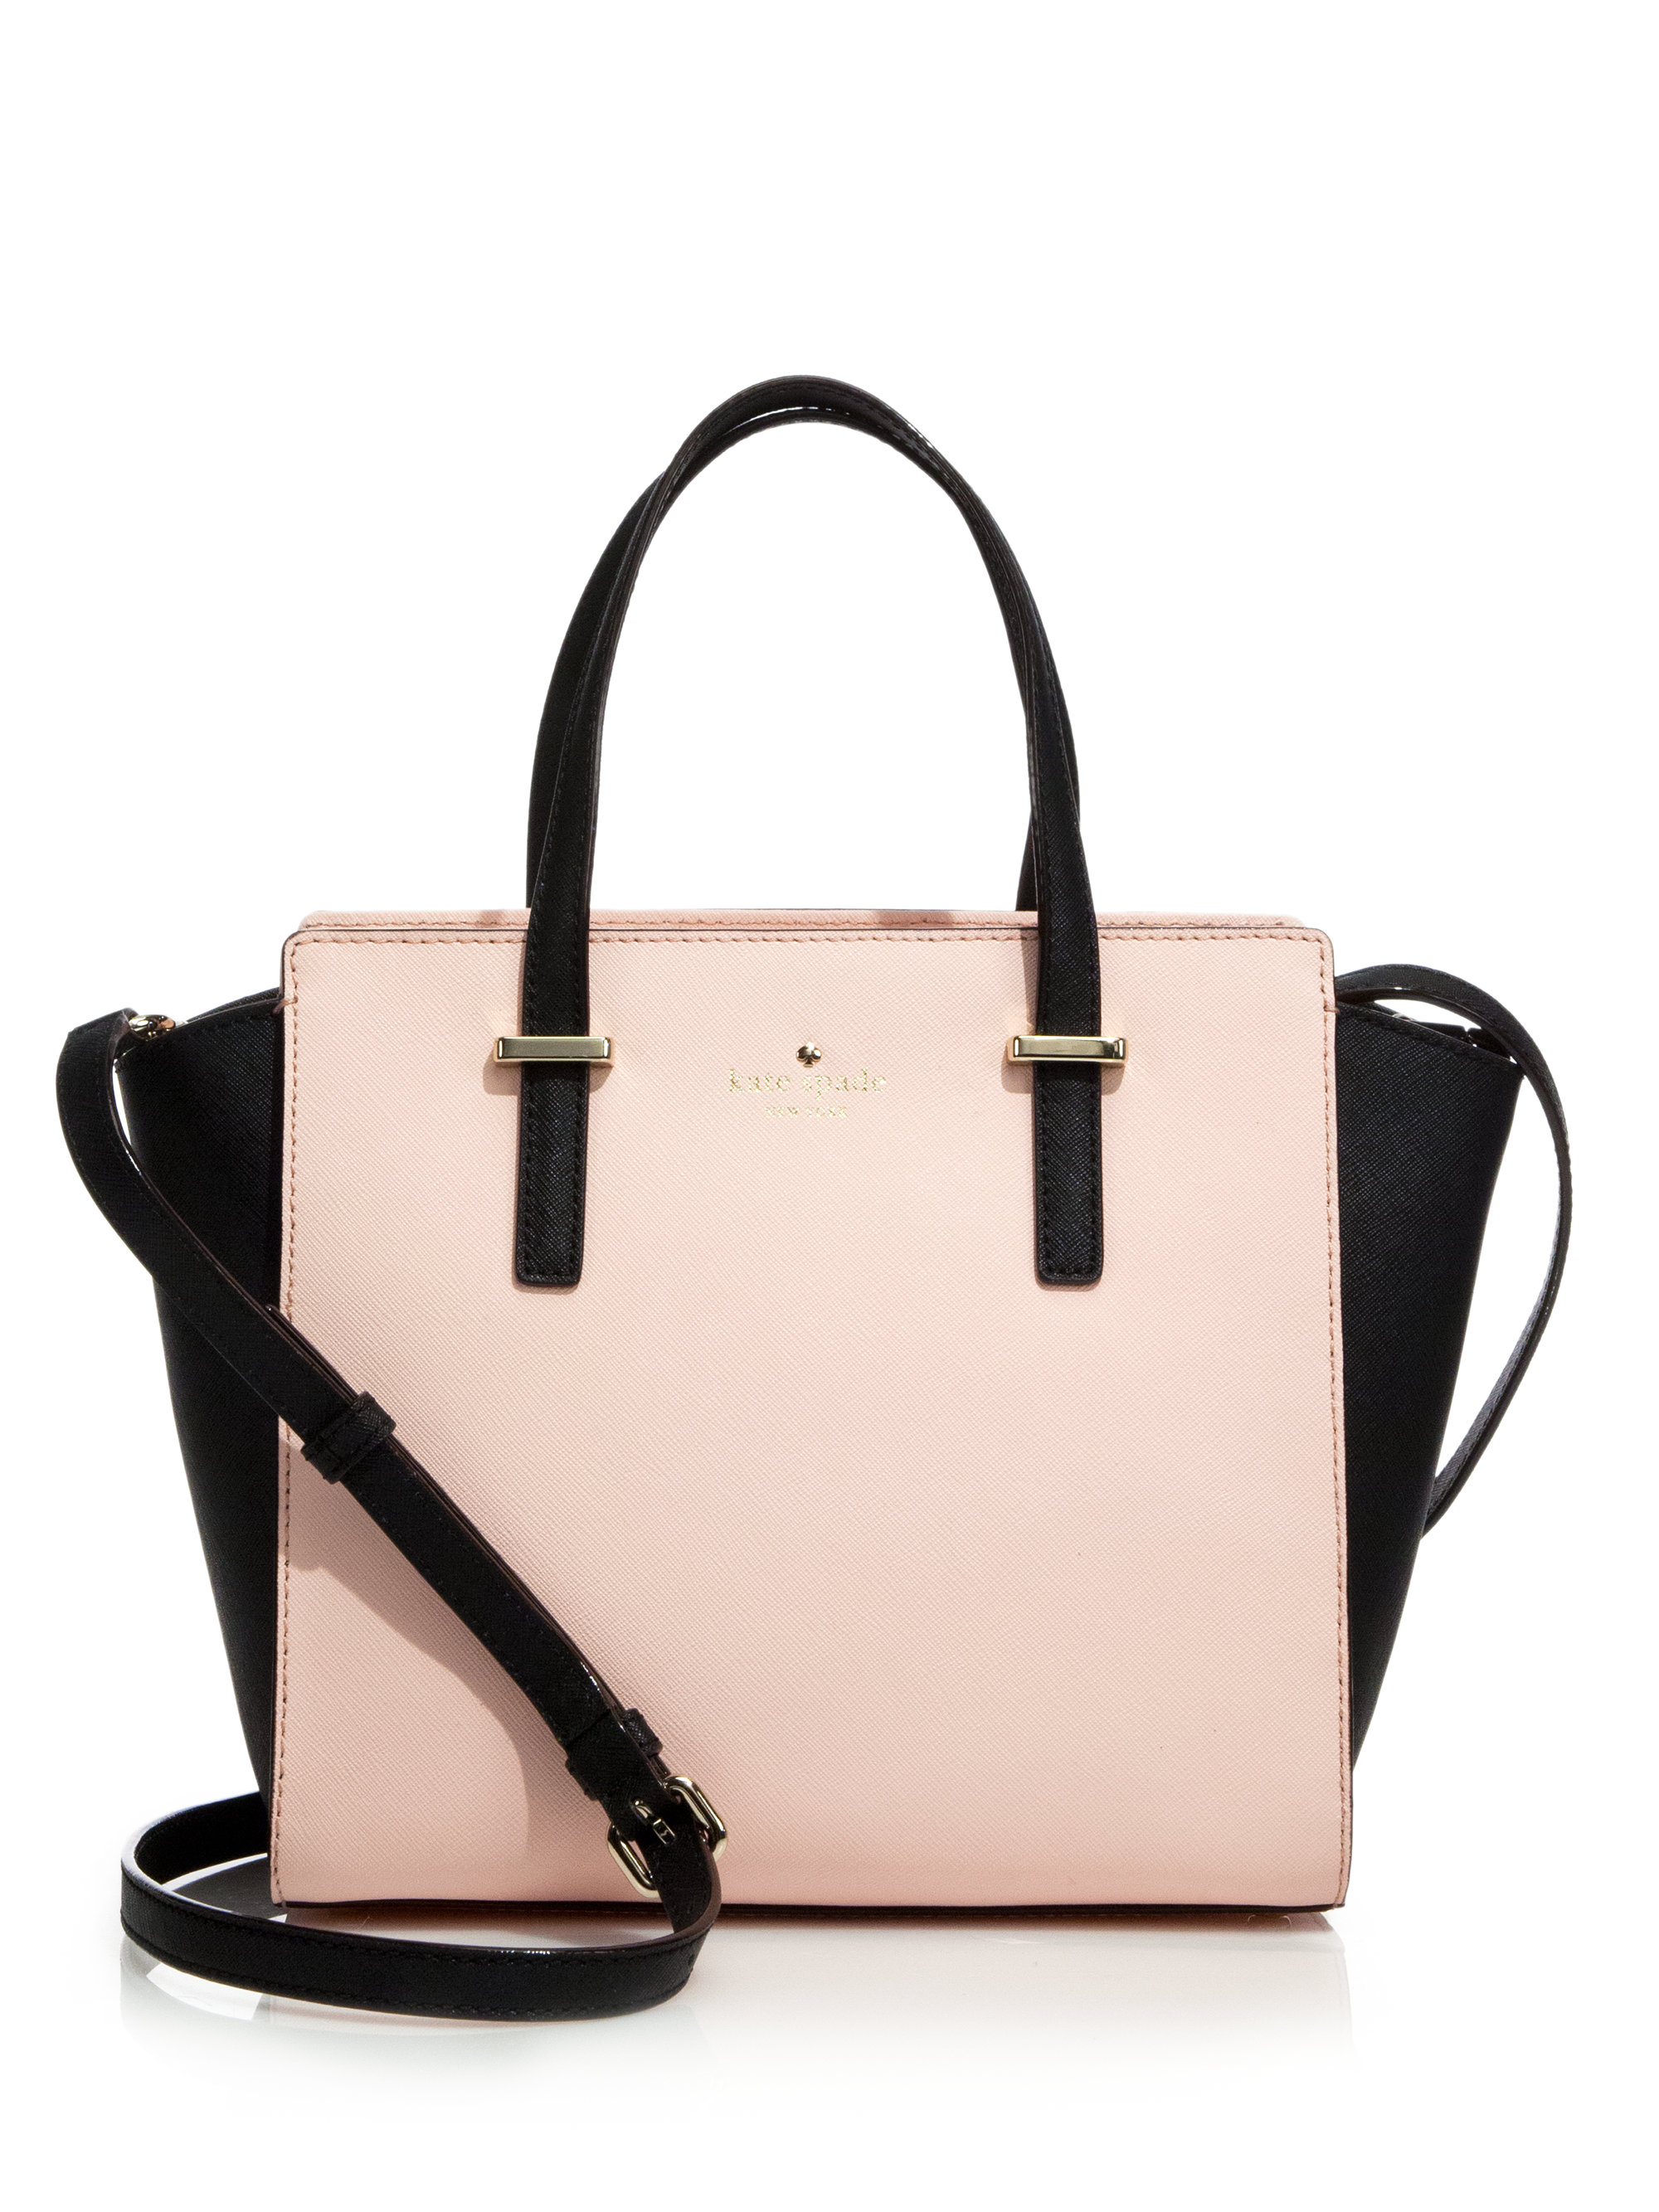 9e7cb53ac Kate Spade Black White And Pink Purse - Best Image Home In Ccdbb.Org